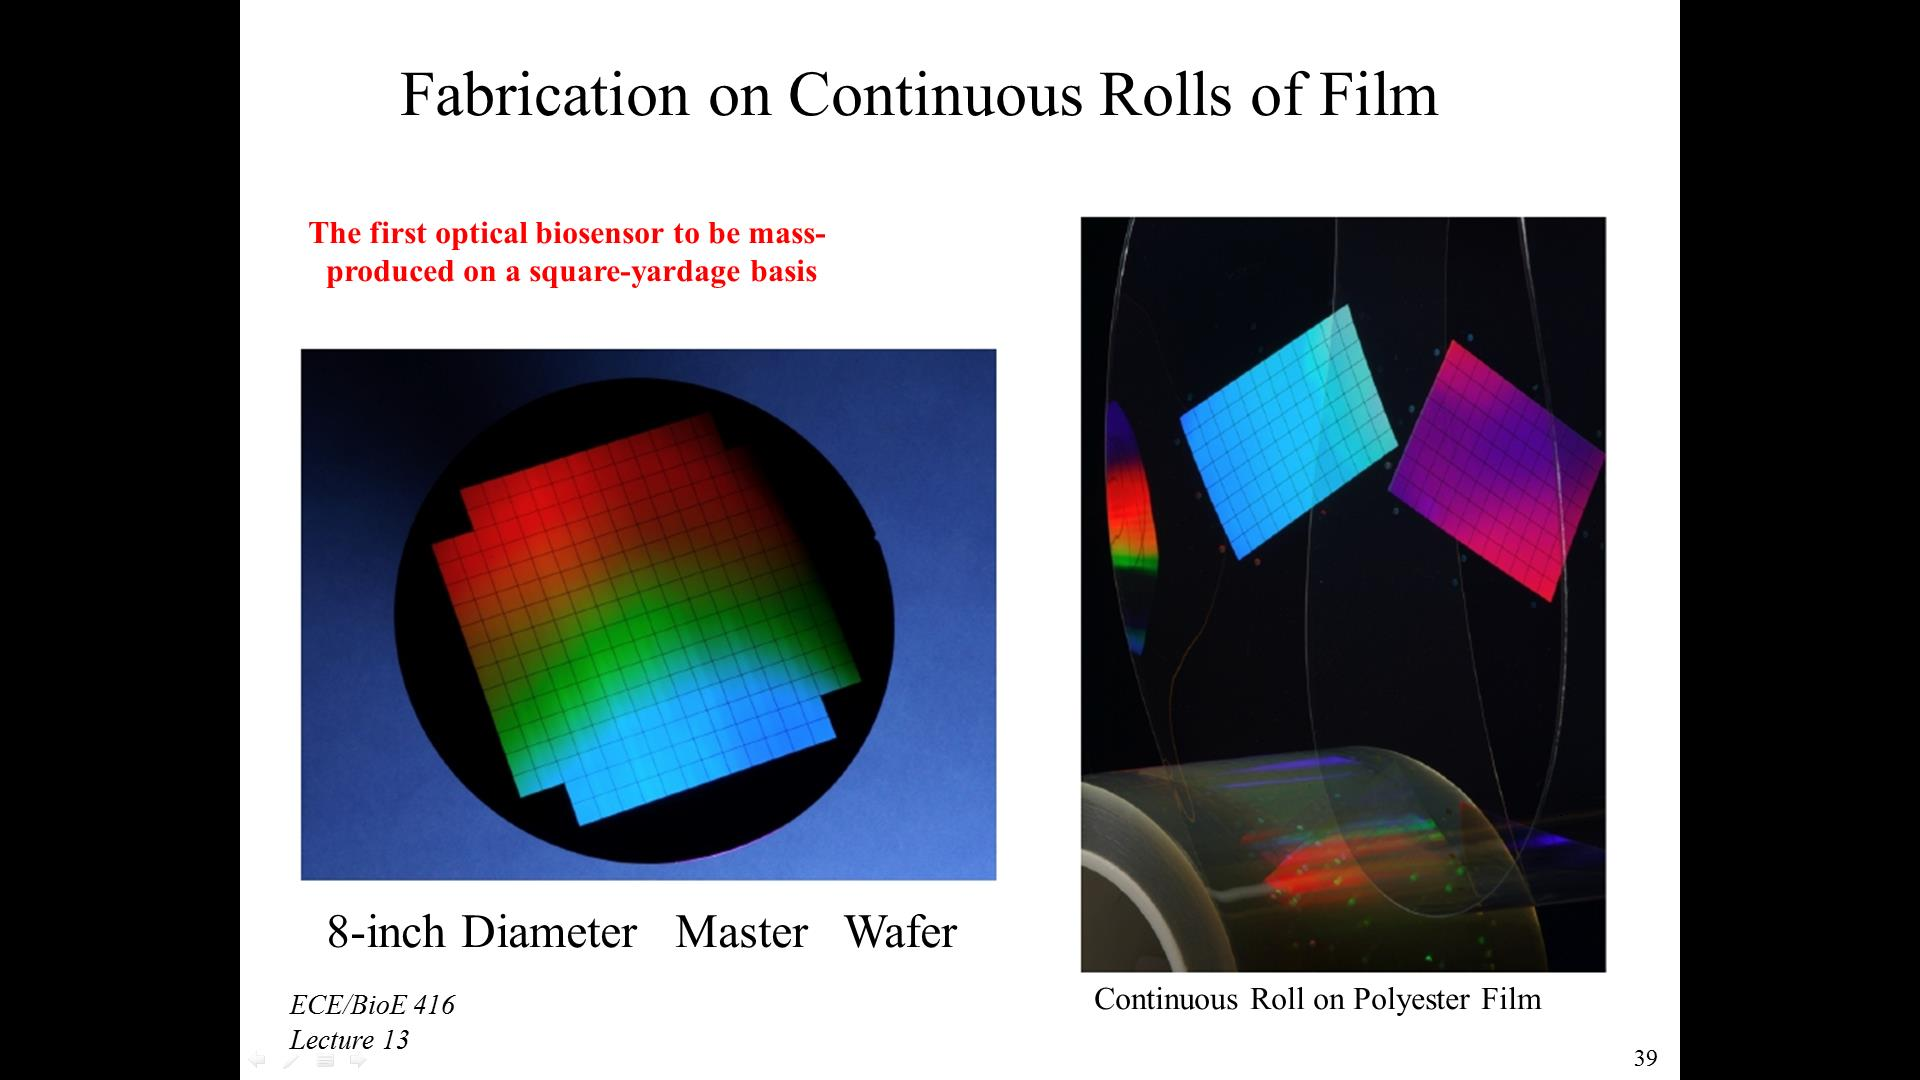 Fabrication on Continuous Rolls of Film